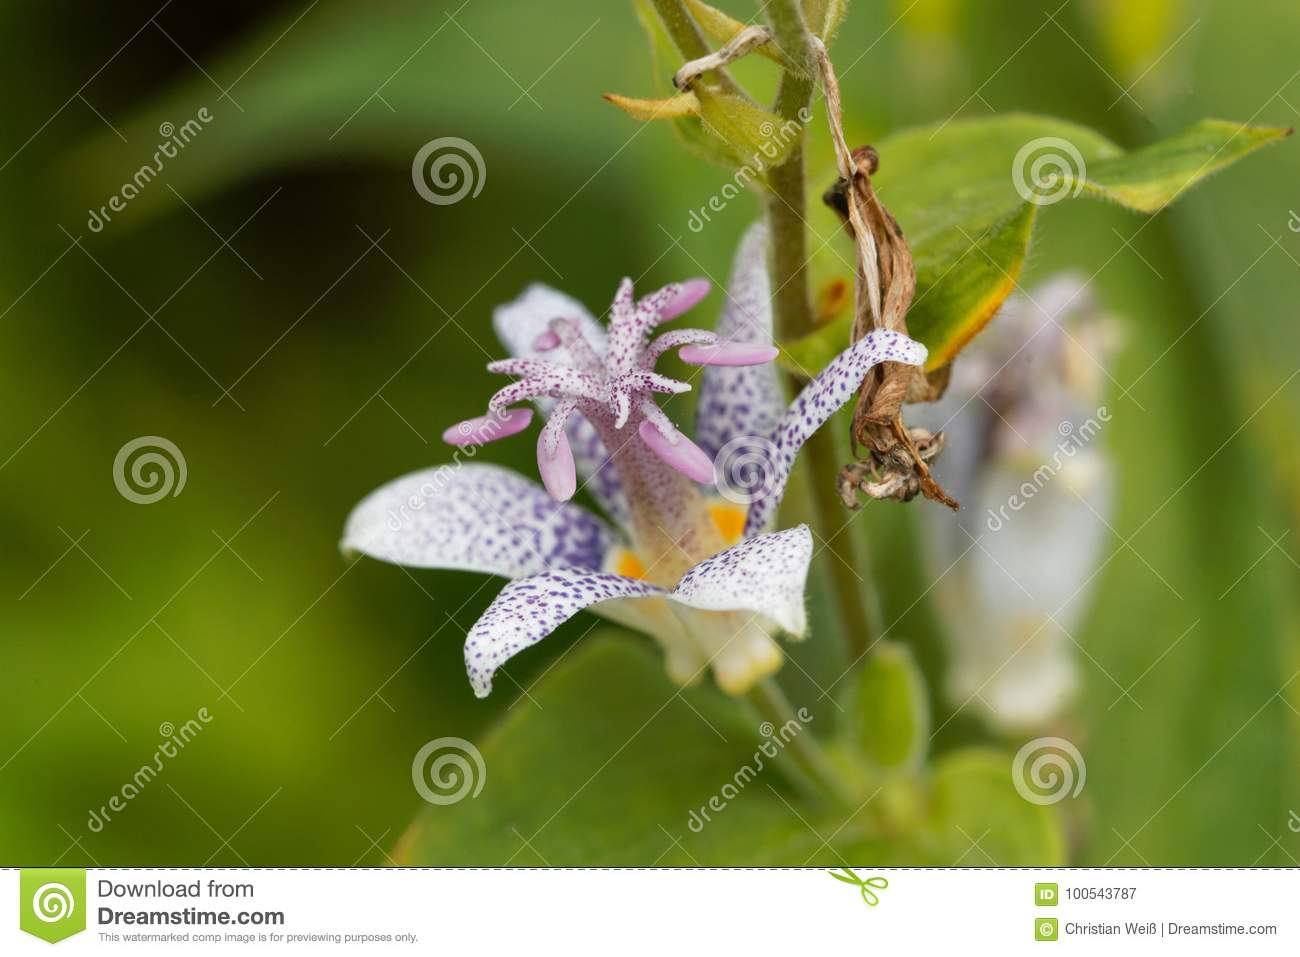 Toad lily flower tricyrtis hirta stock image image of hairy green toad lily flower tricyrtis hirta hairy green royalty free stock photo download toad lily flower izmirmasajfo